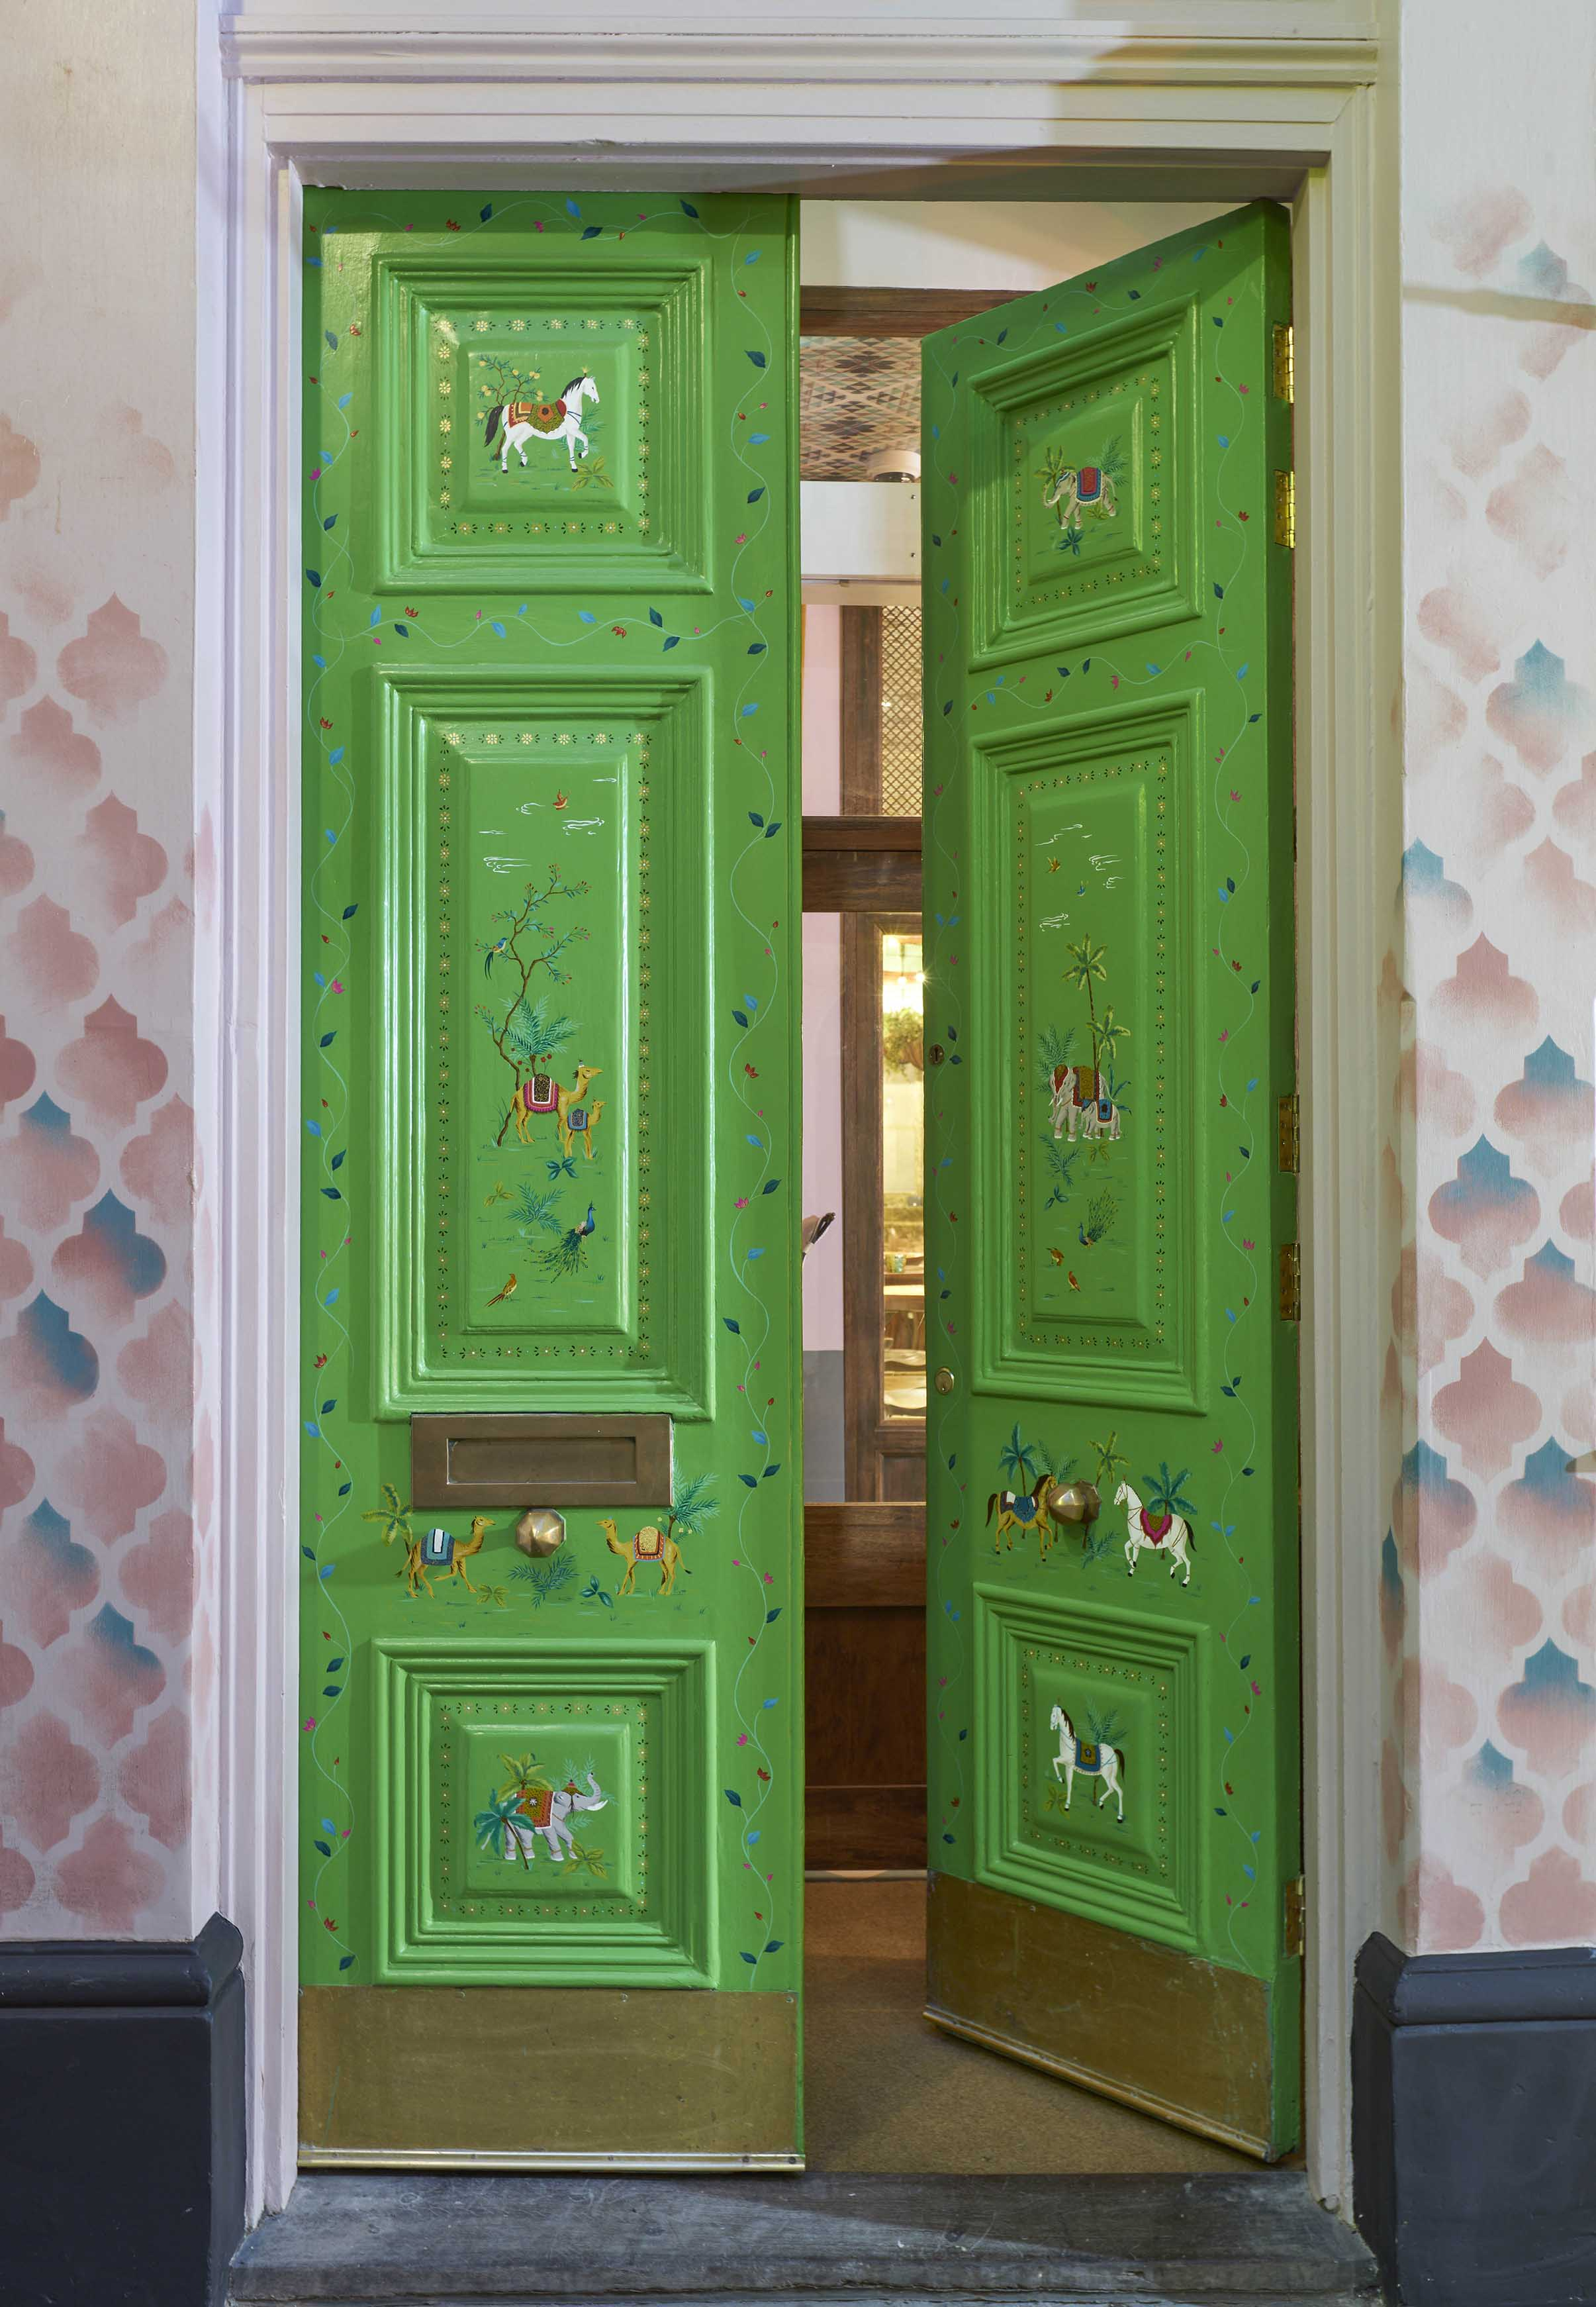 Entrance doors hand-painted with animal scenes and decorative borders.